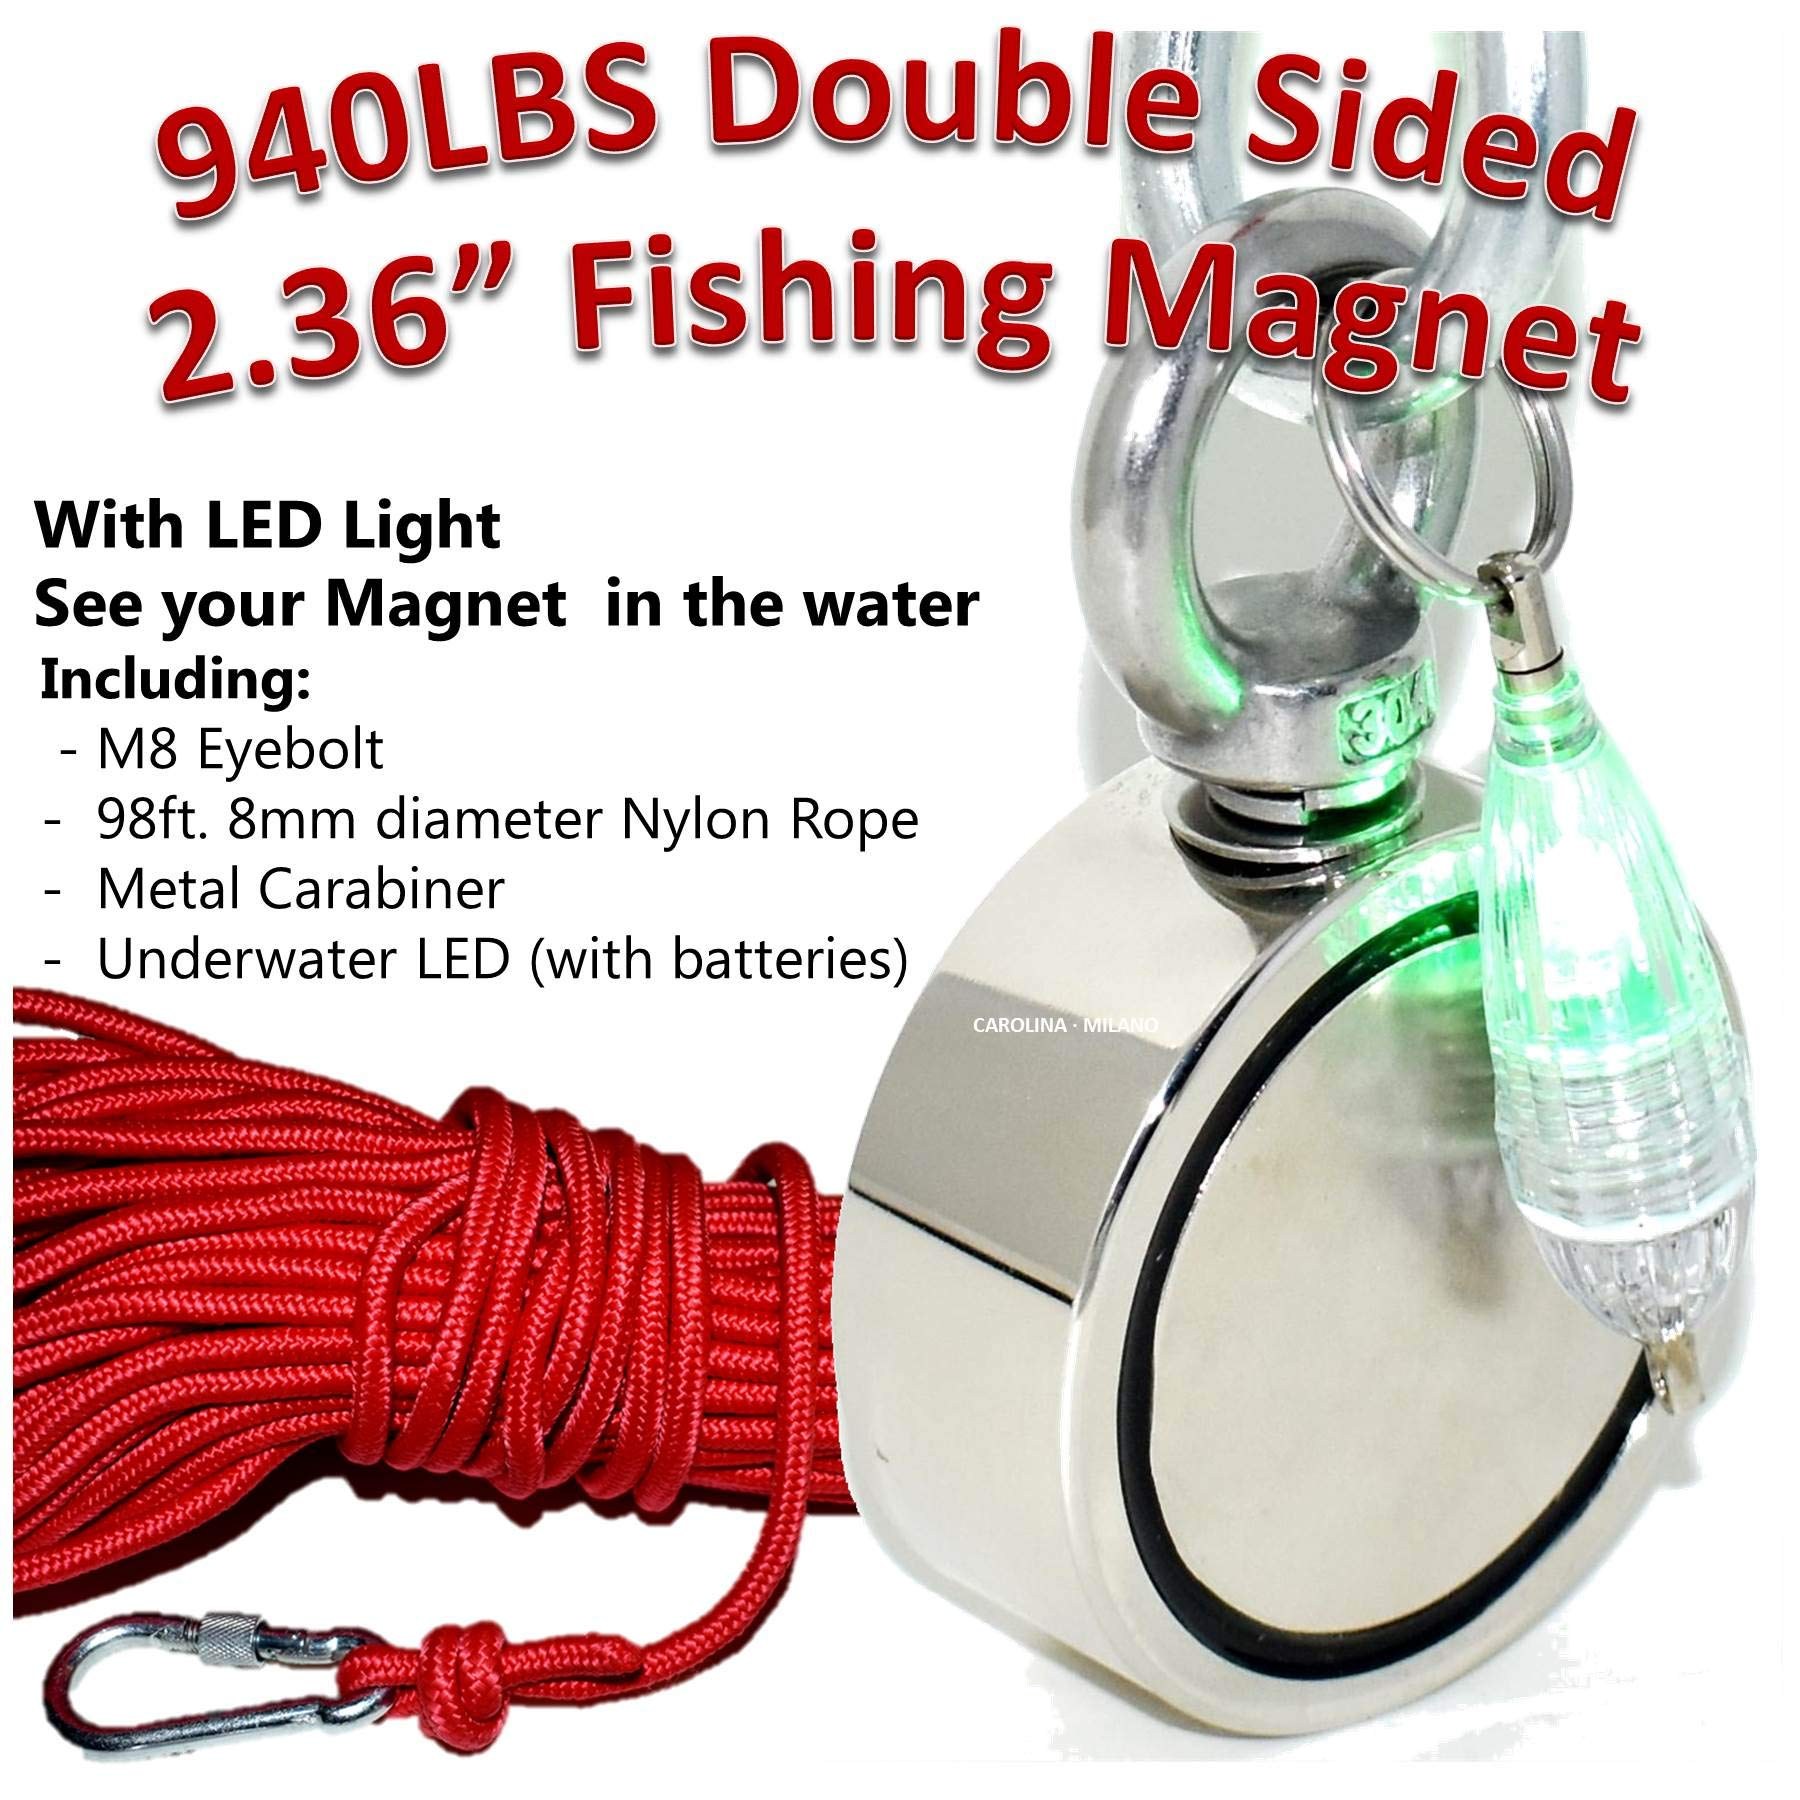 Double Sided Fishing Magnet kit 940 LBS Combined Pulling Force Strong Rare Earth Neodymium N52 Magnetic Grade Diameter 2.36'', M8 Eyebolt 98ft. 8mm Rope & LED Light Retrieve from Rivers Lakes Canals by CAROLINA MILANO